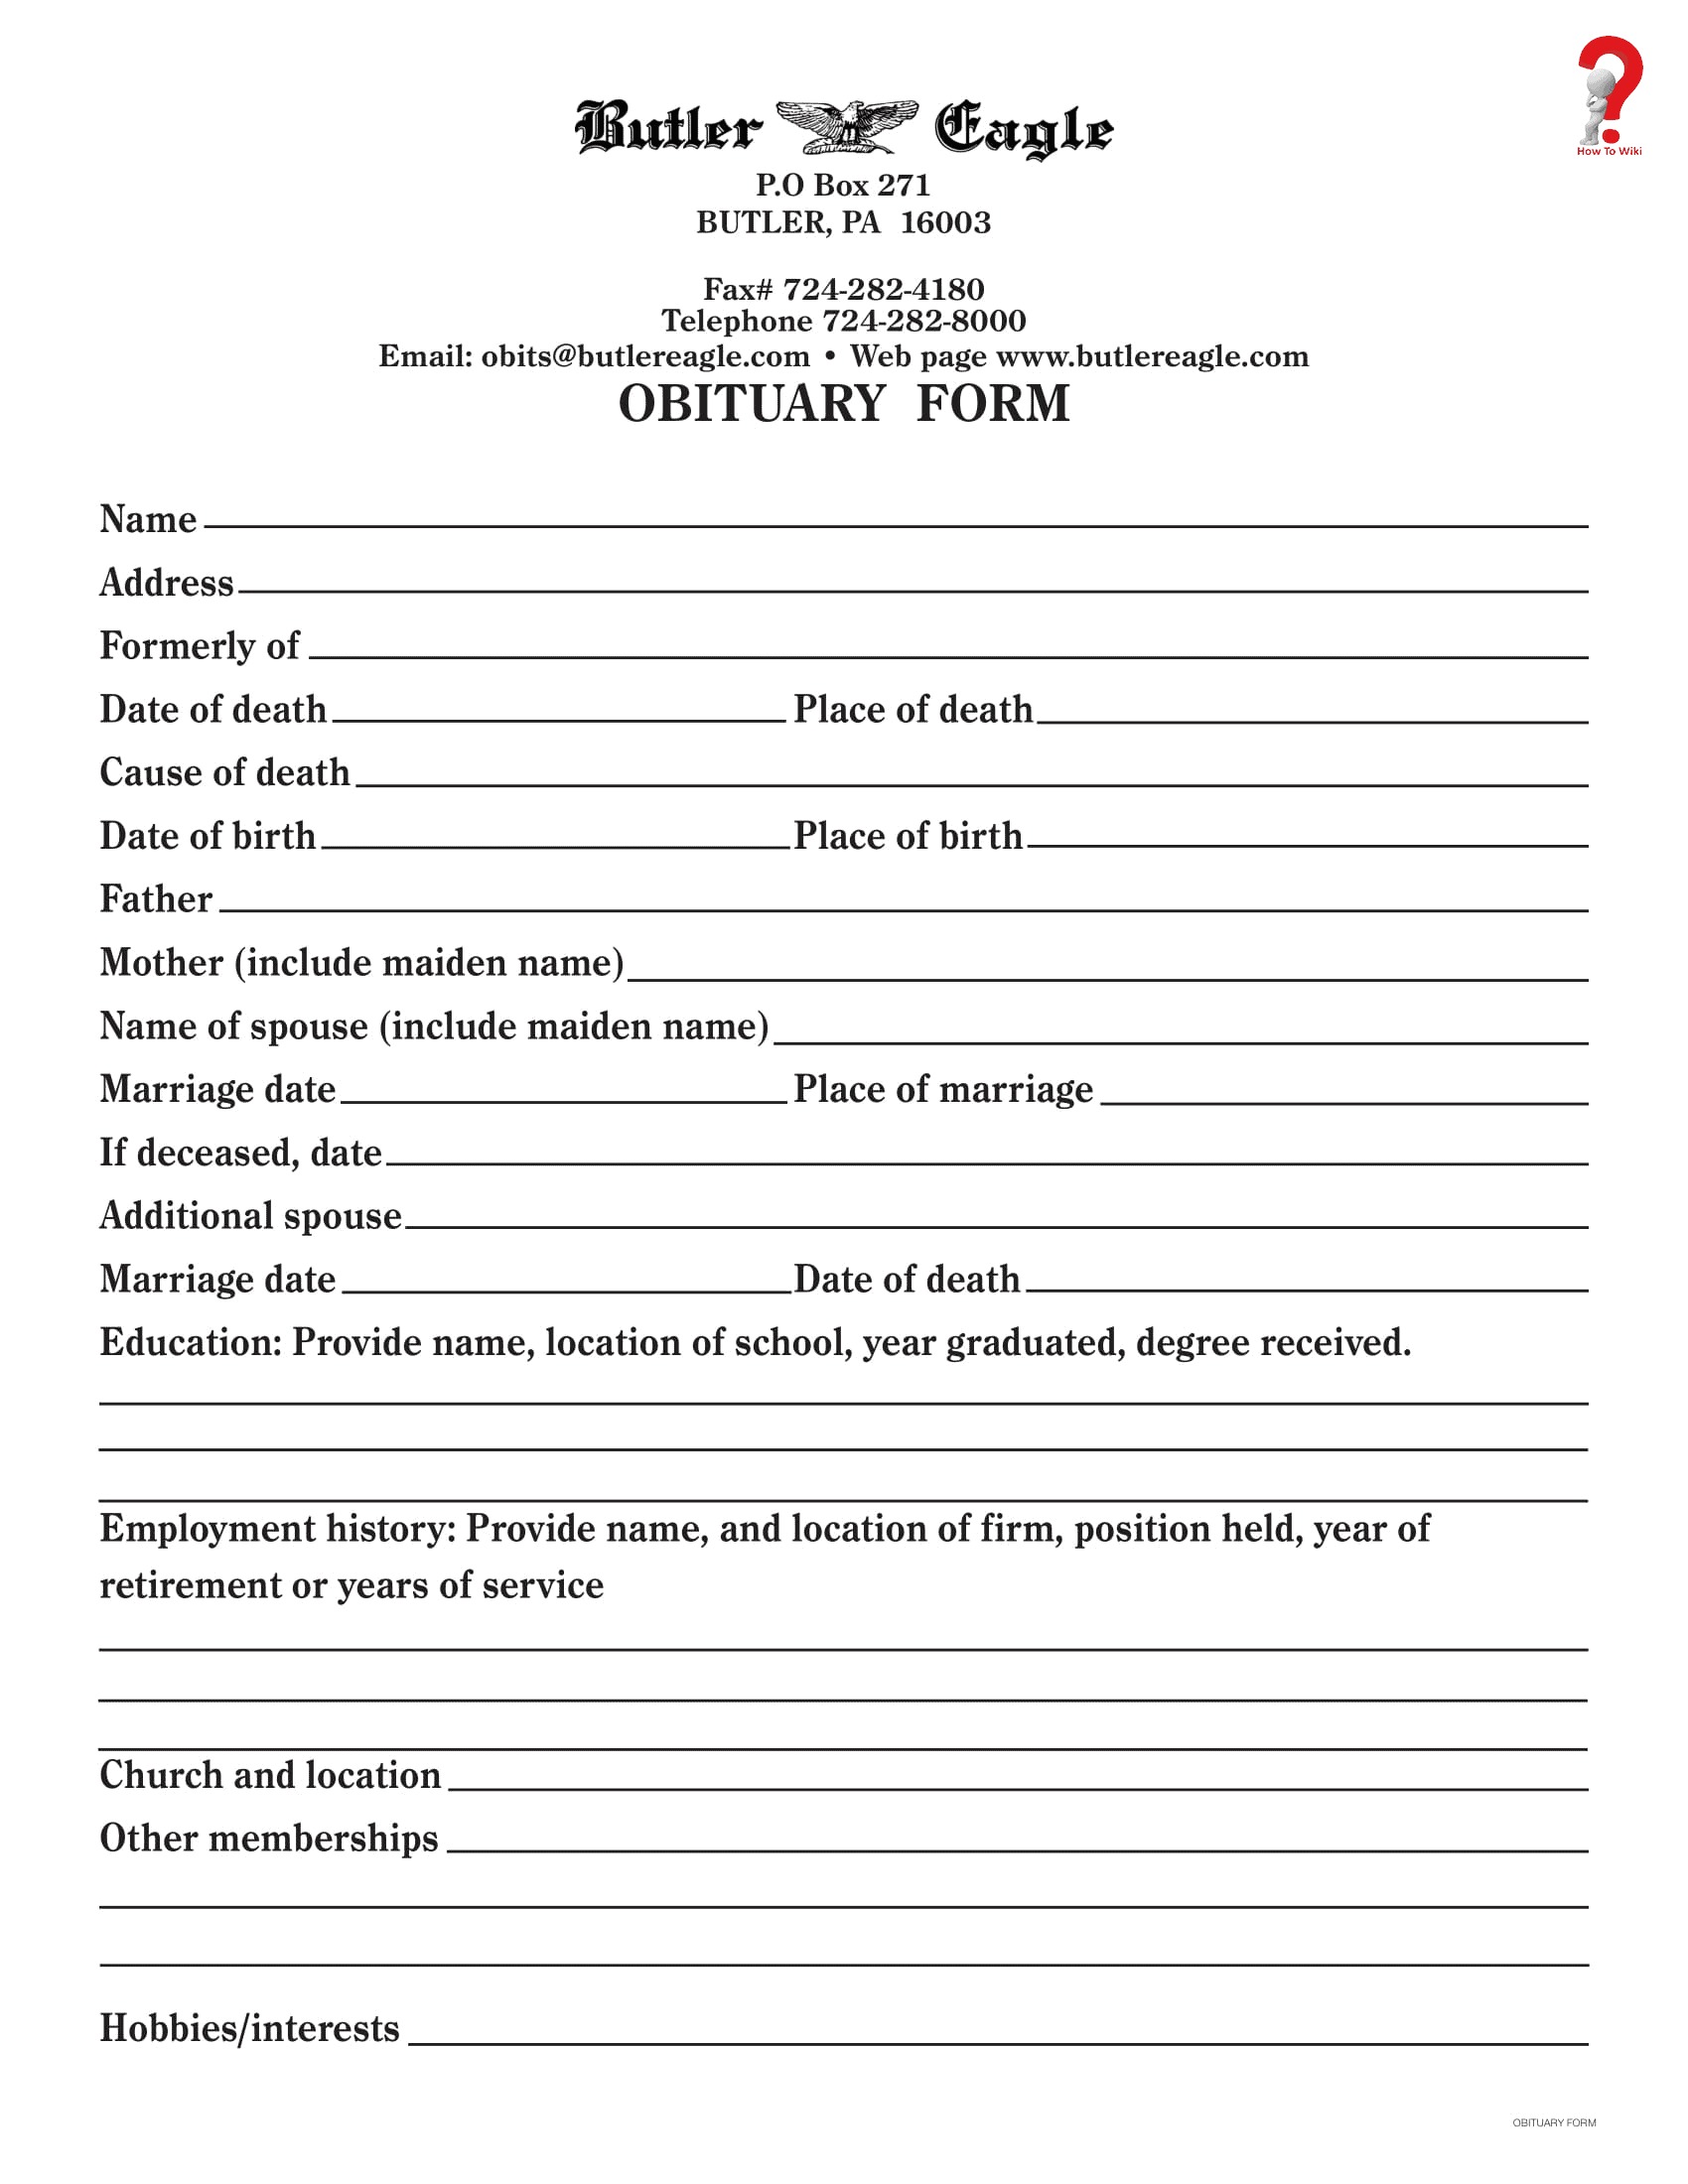 Fill In The Blank Obituary Template